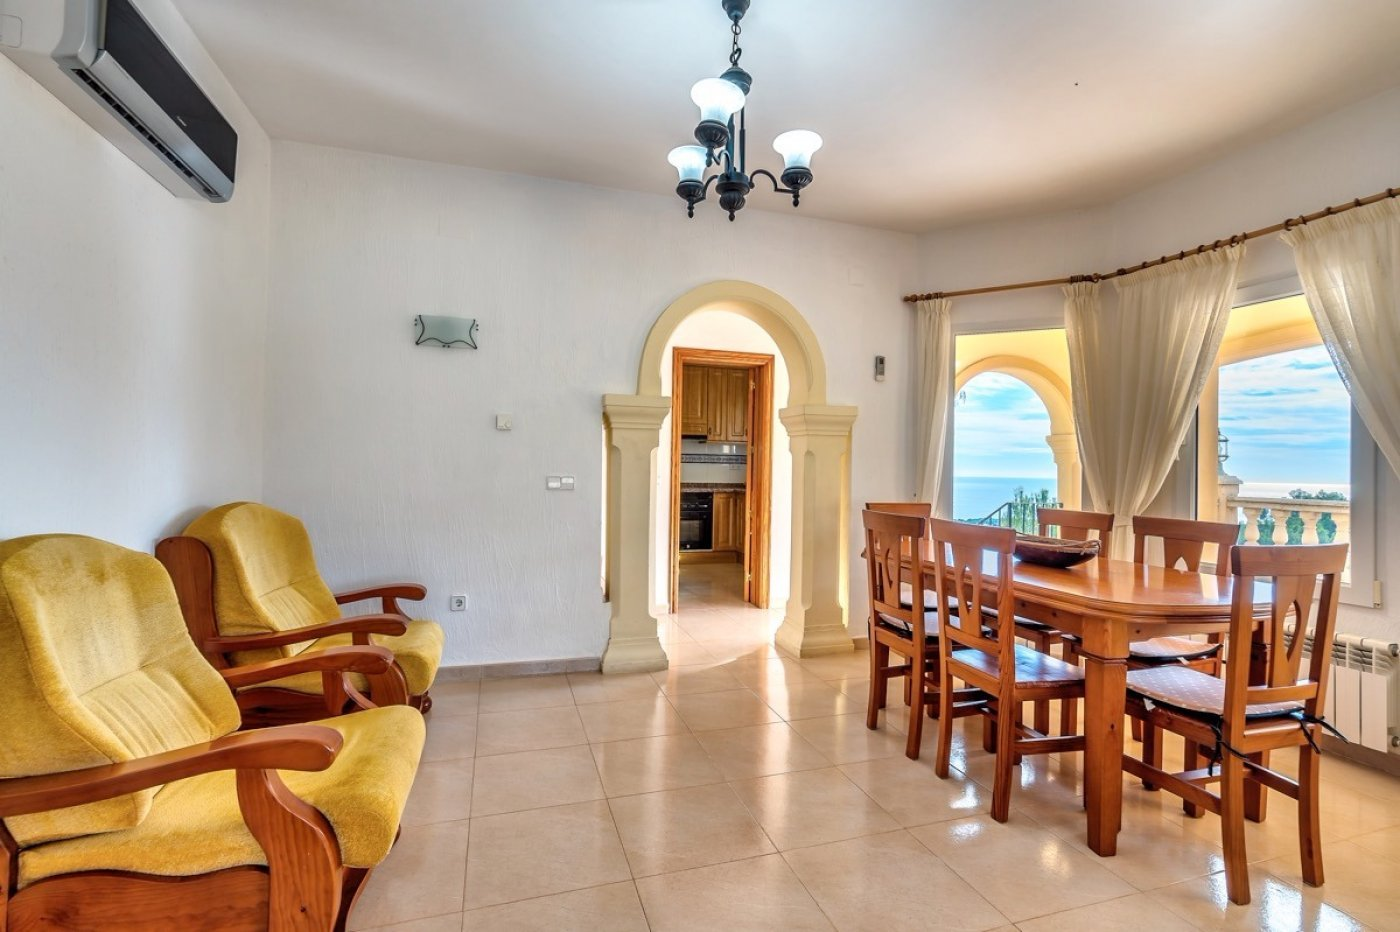 Fotogallerij - 8 - Exceptional homes in the Costa Blanca. Unparalleled Service. Exceptional properties in the Costa Blanca